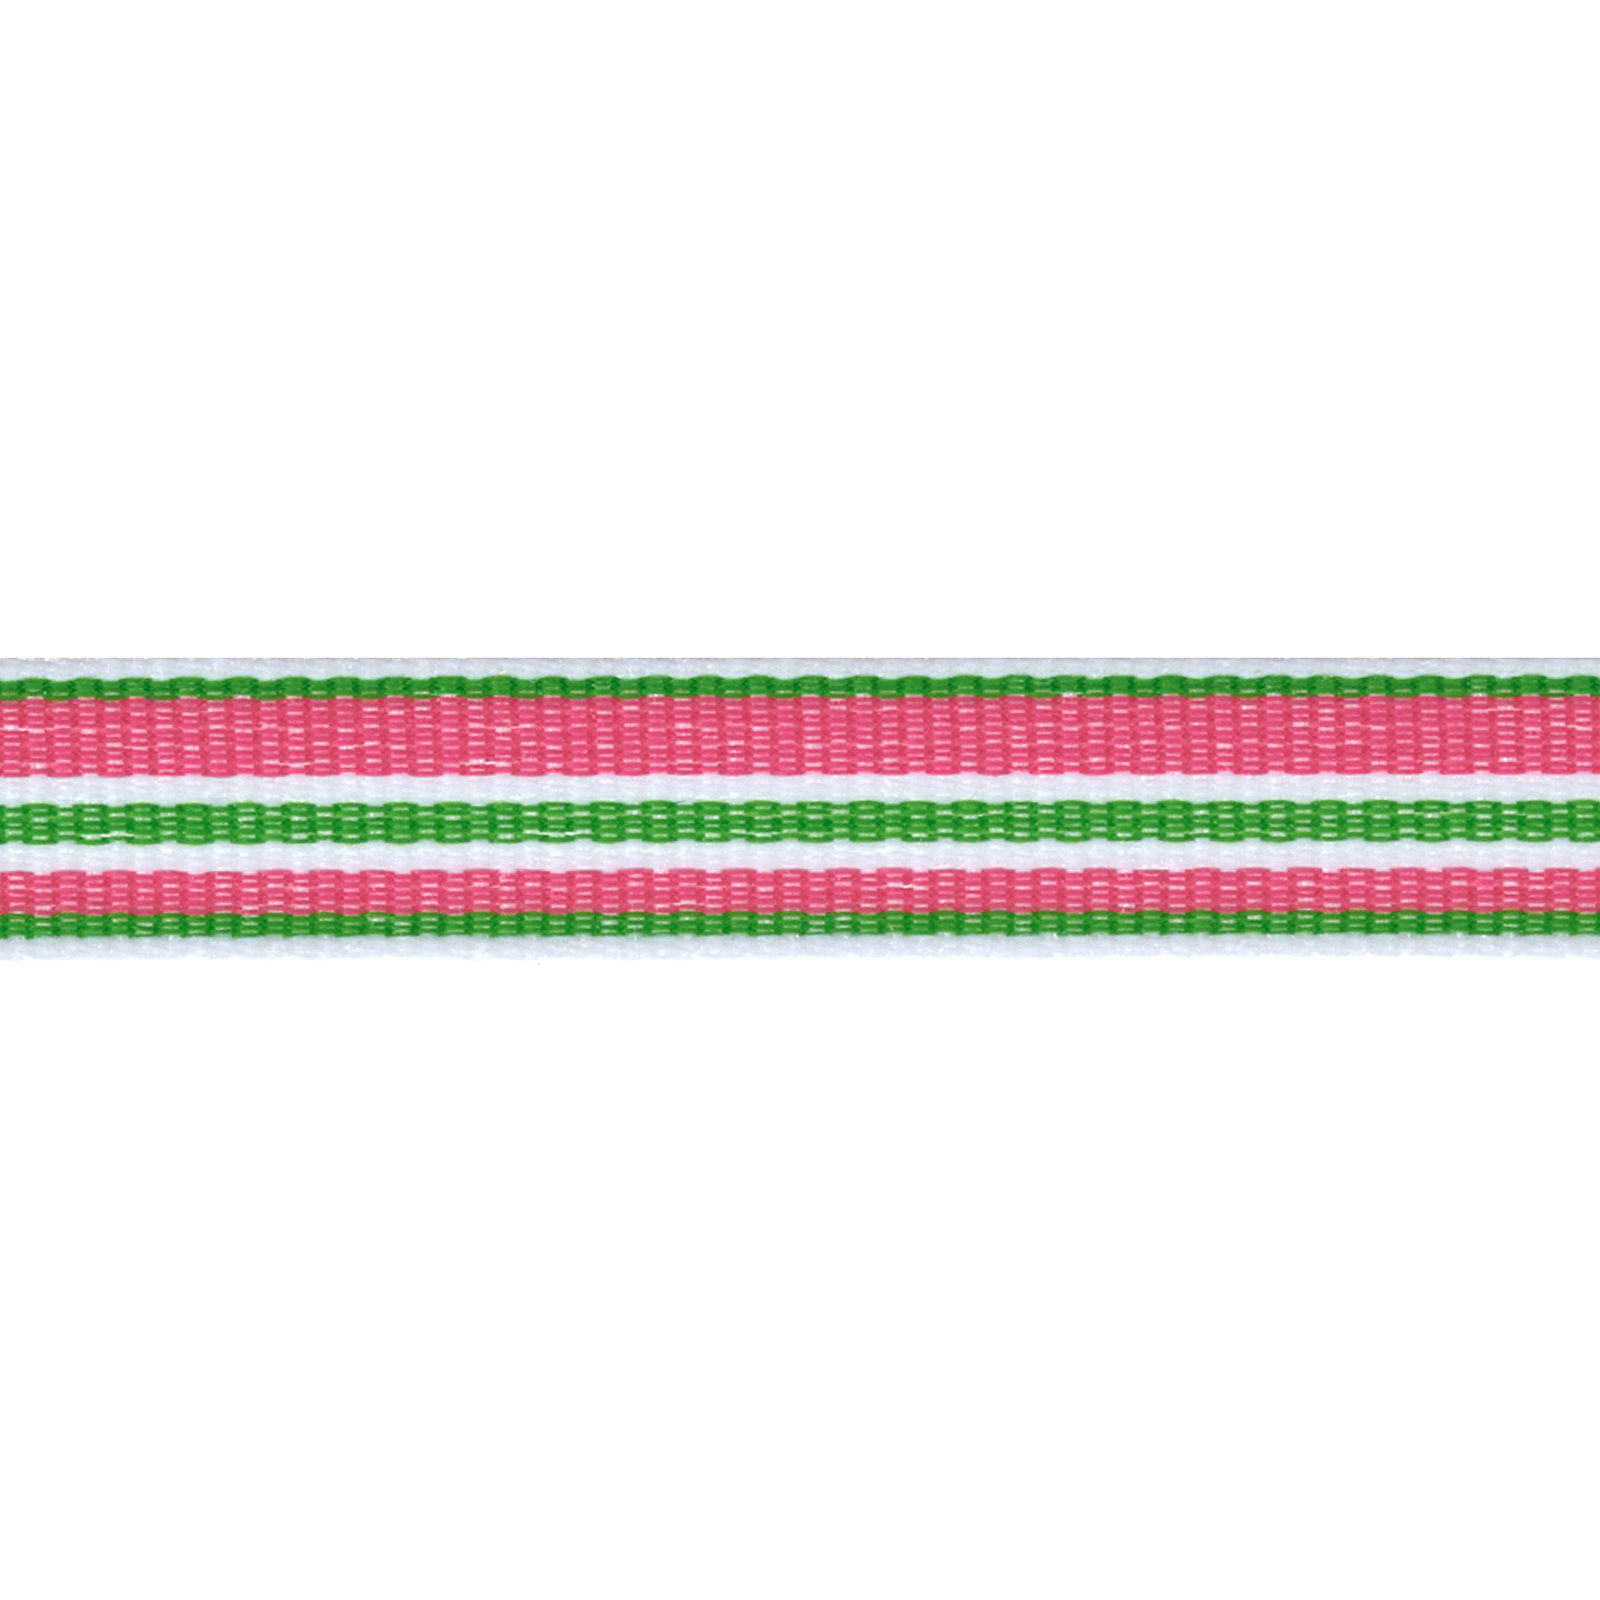 1/2'' Twill Tape Stripes Pink/Green/White